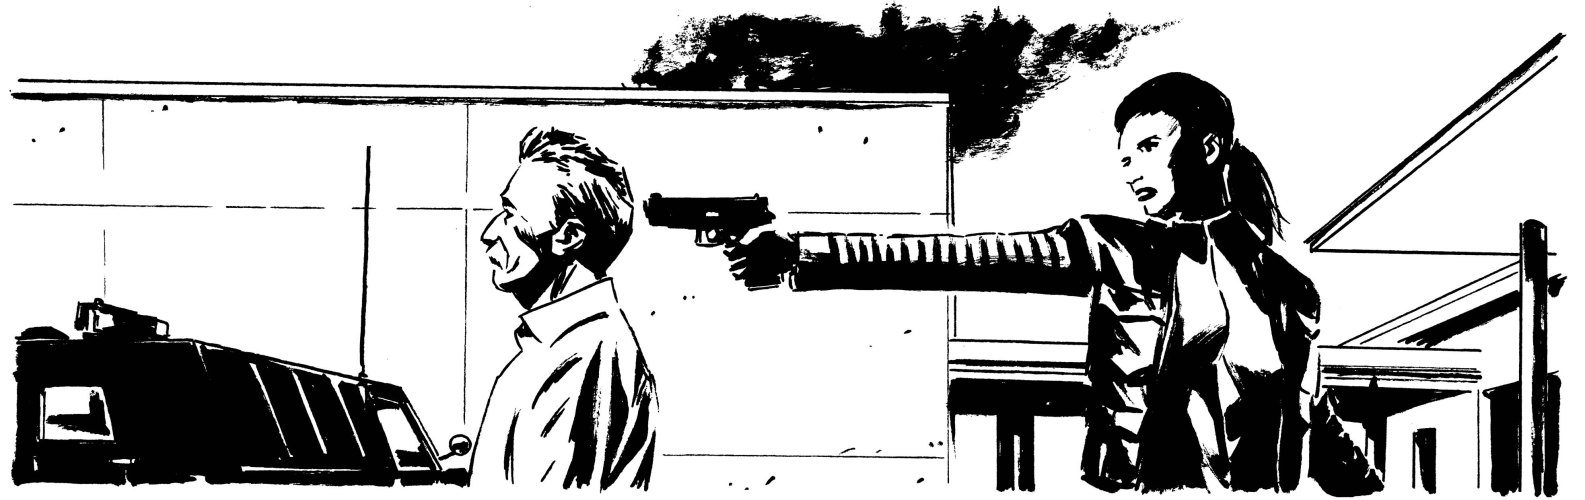 ruckawriter:  By Michael Lark. From LAZARUS #1.  So looking forward to this book.